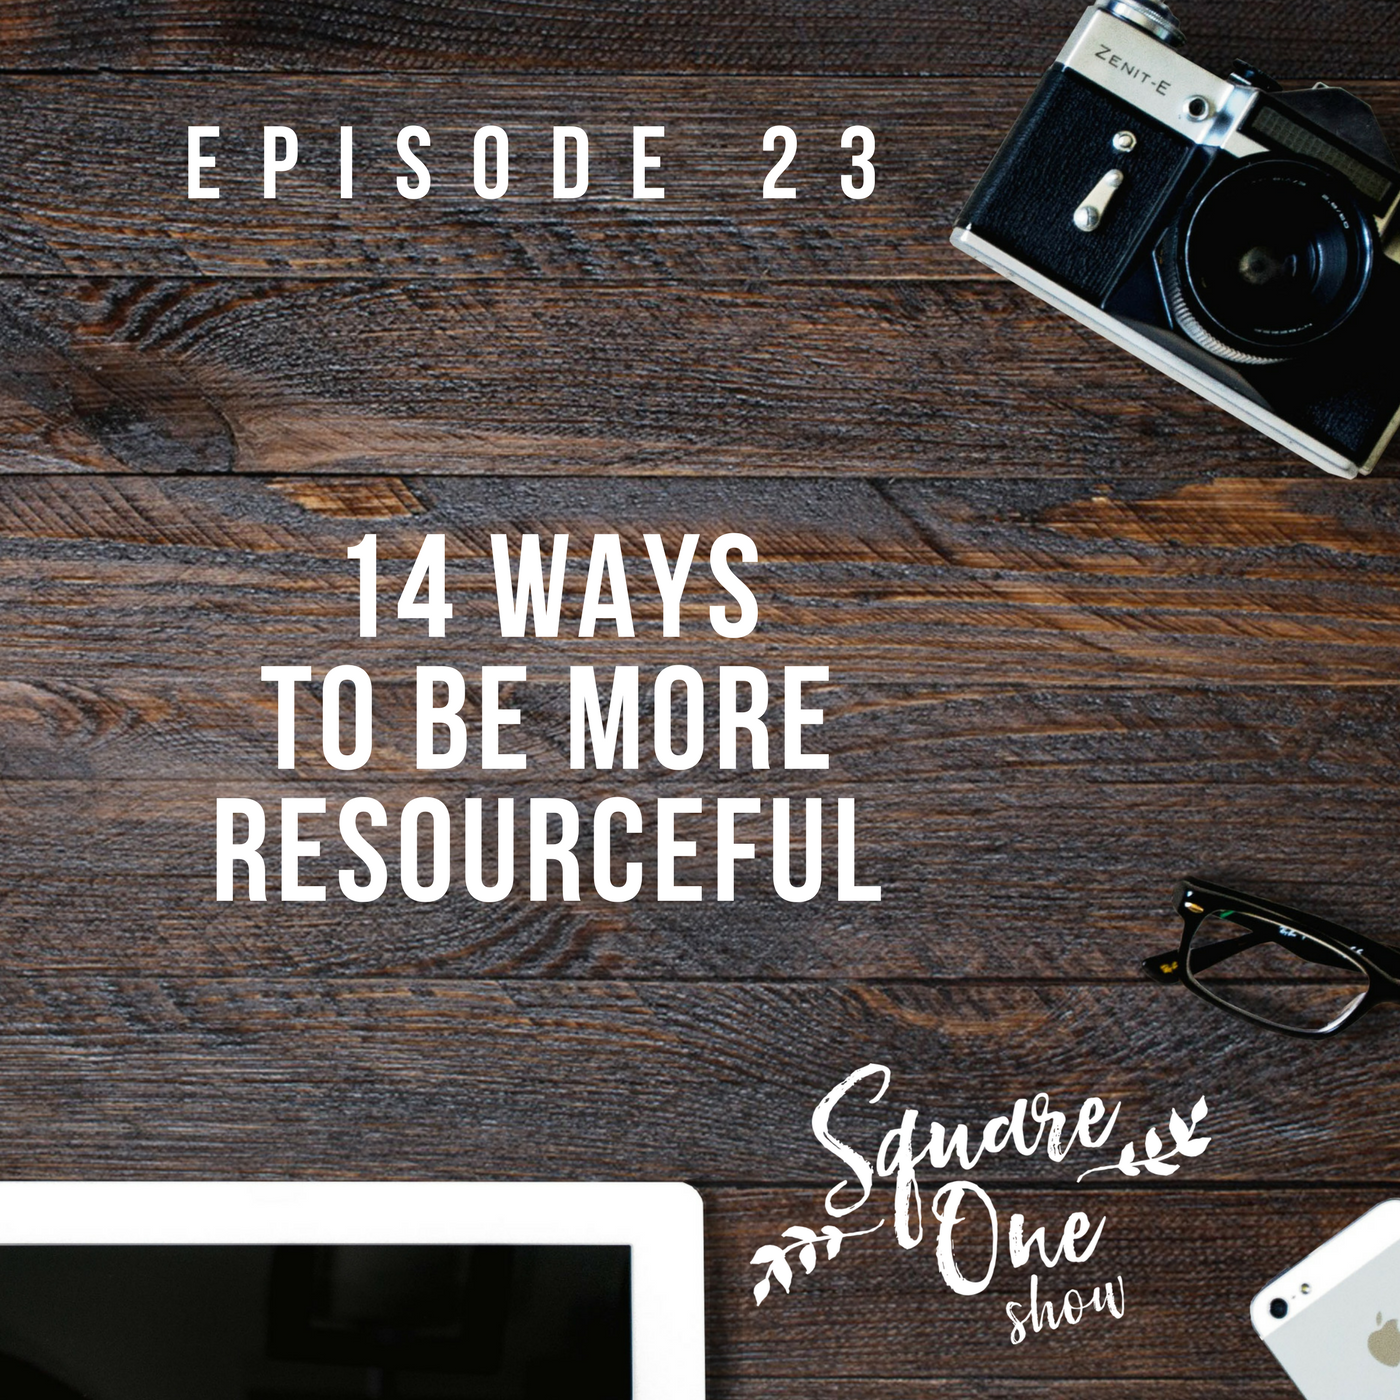 14 Ways To Be More Resourceful